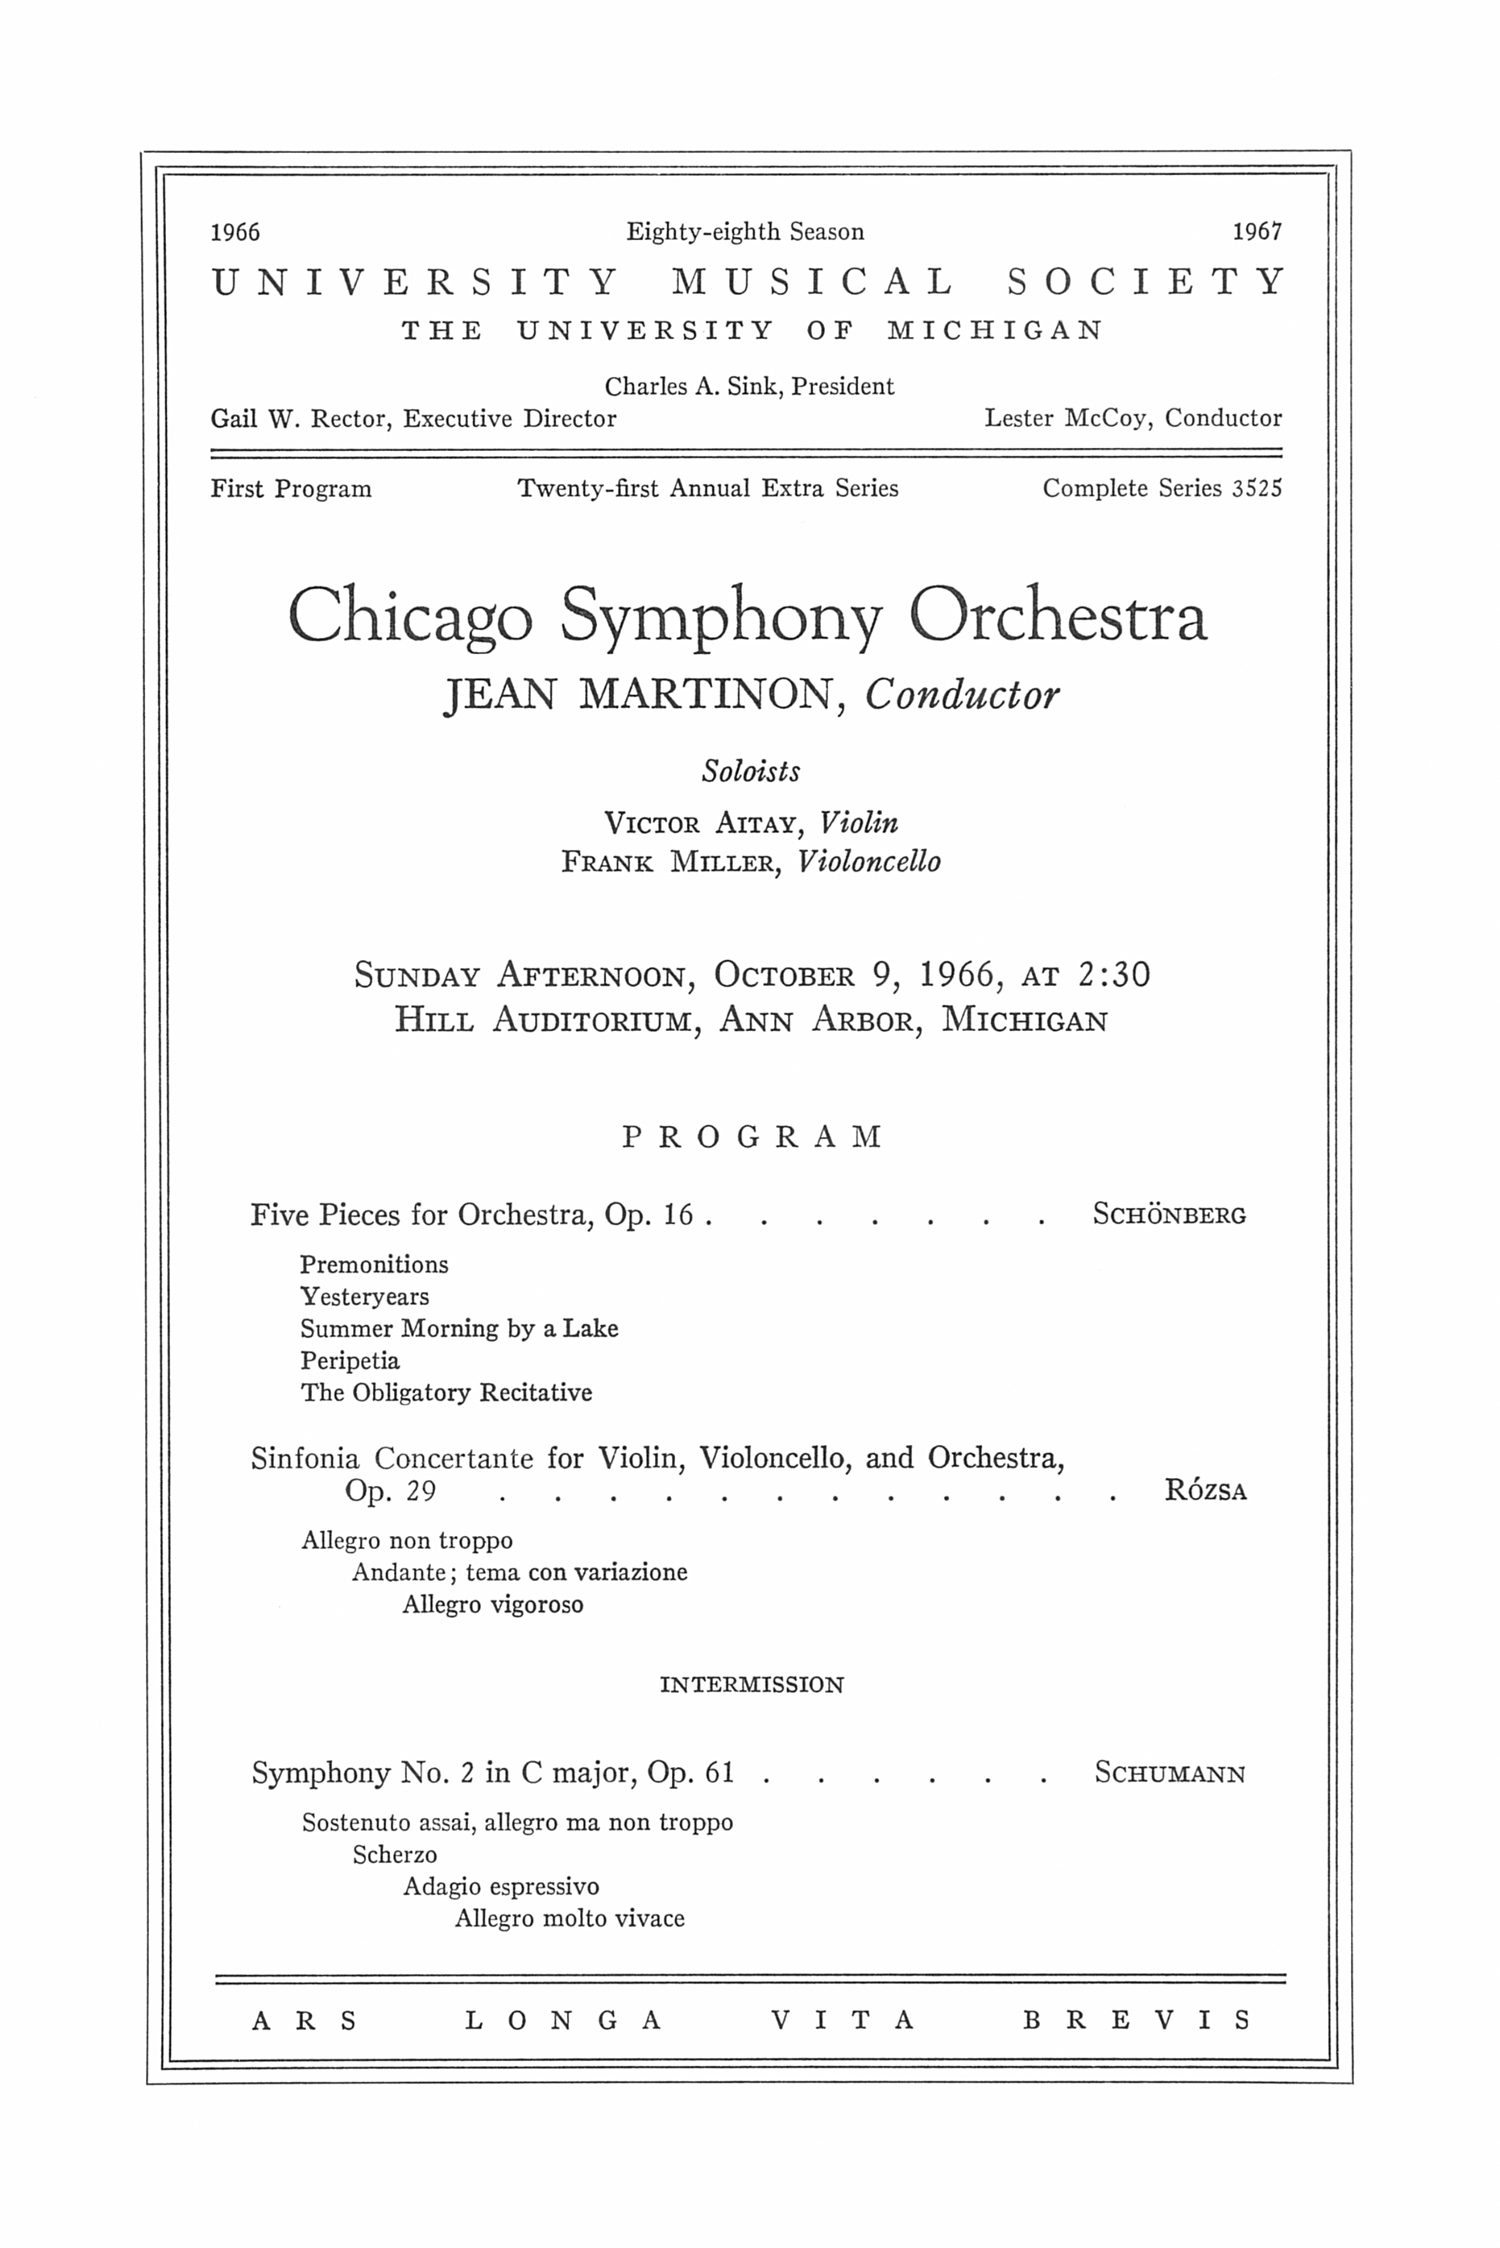 UMS Concert Program, October 9, 1966: Chicago Symphony Orchestra -- Jean Martinon image